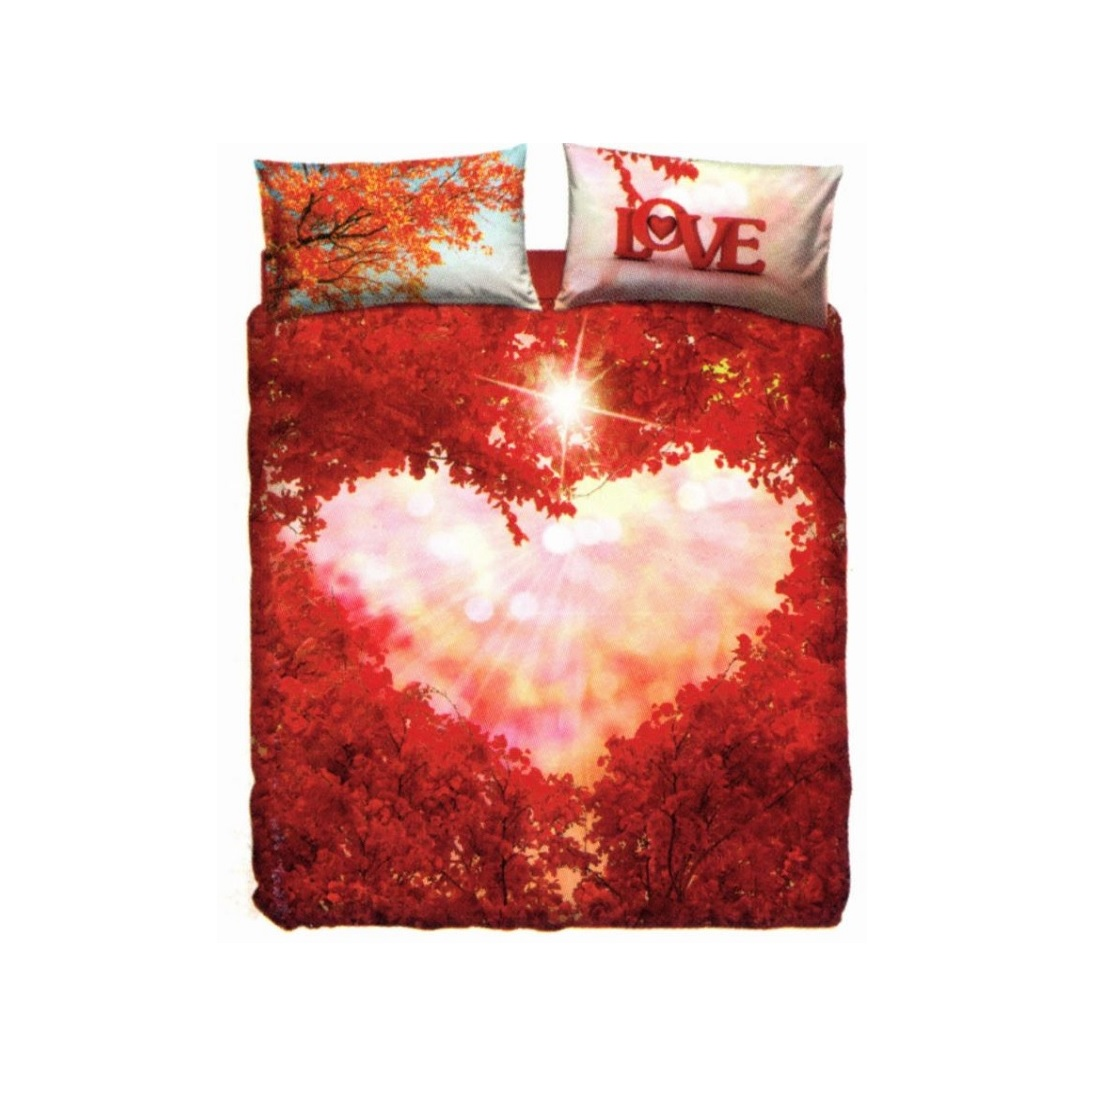 sale retailer 76854 77a99 Copripiumino Bassetti Imagine Innovation Love Everywhere Cuore Matrimoniale